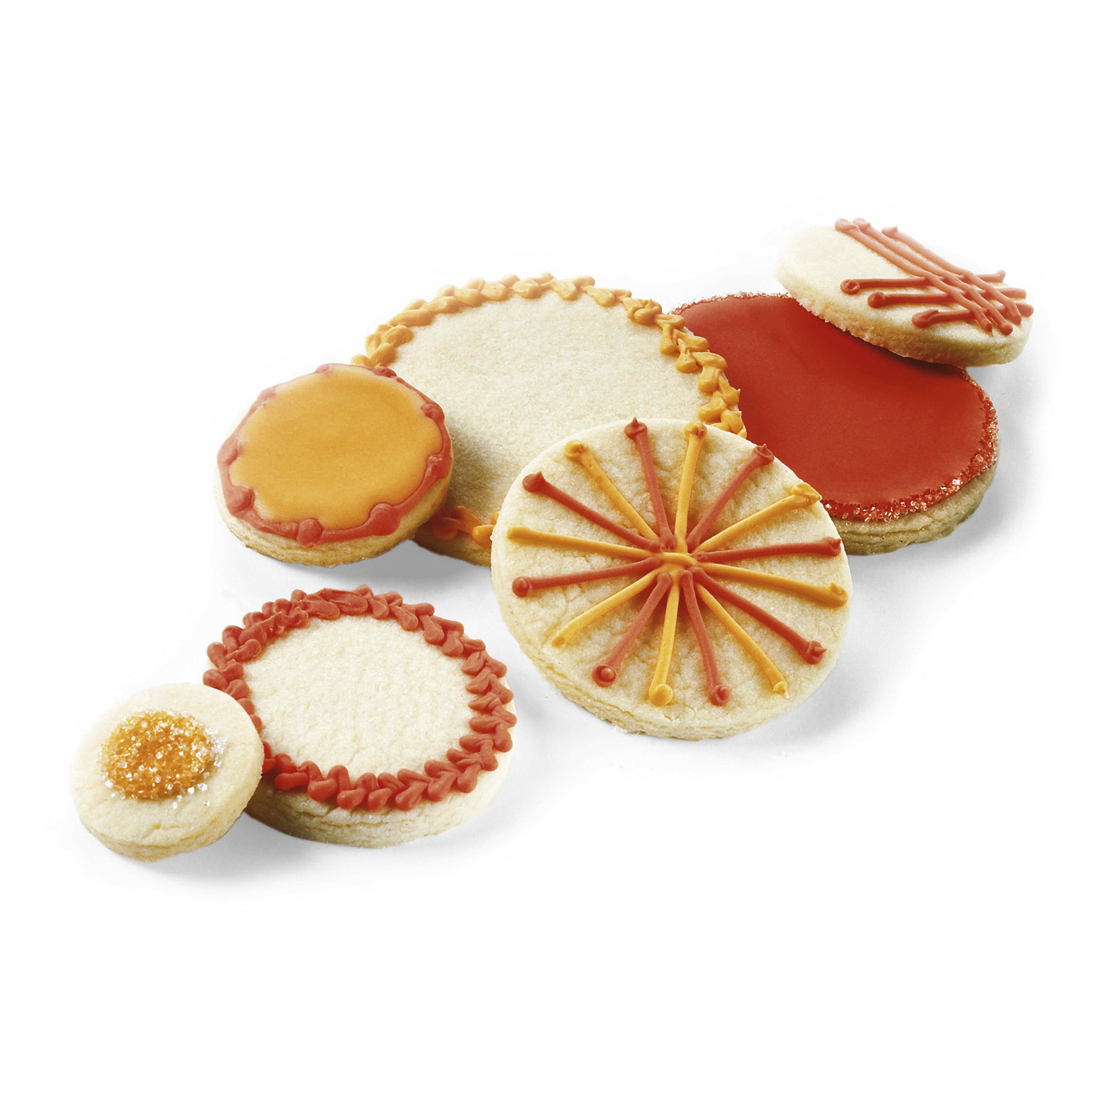 Cuisipro Snap-Fit Red Round Shapes Cookie Cutter Set